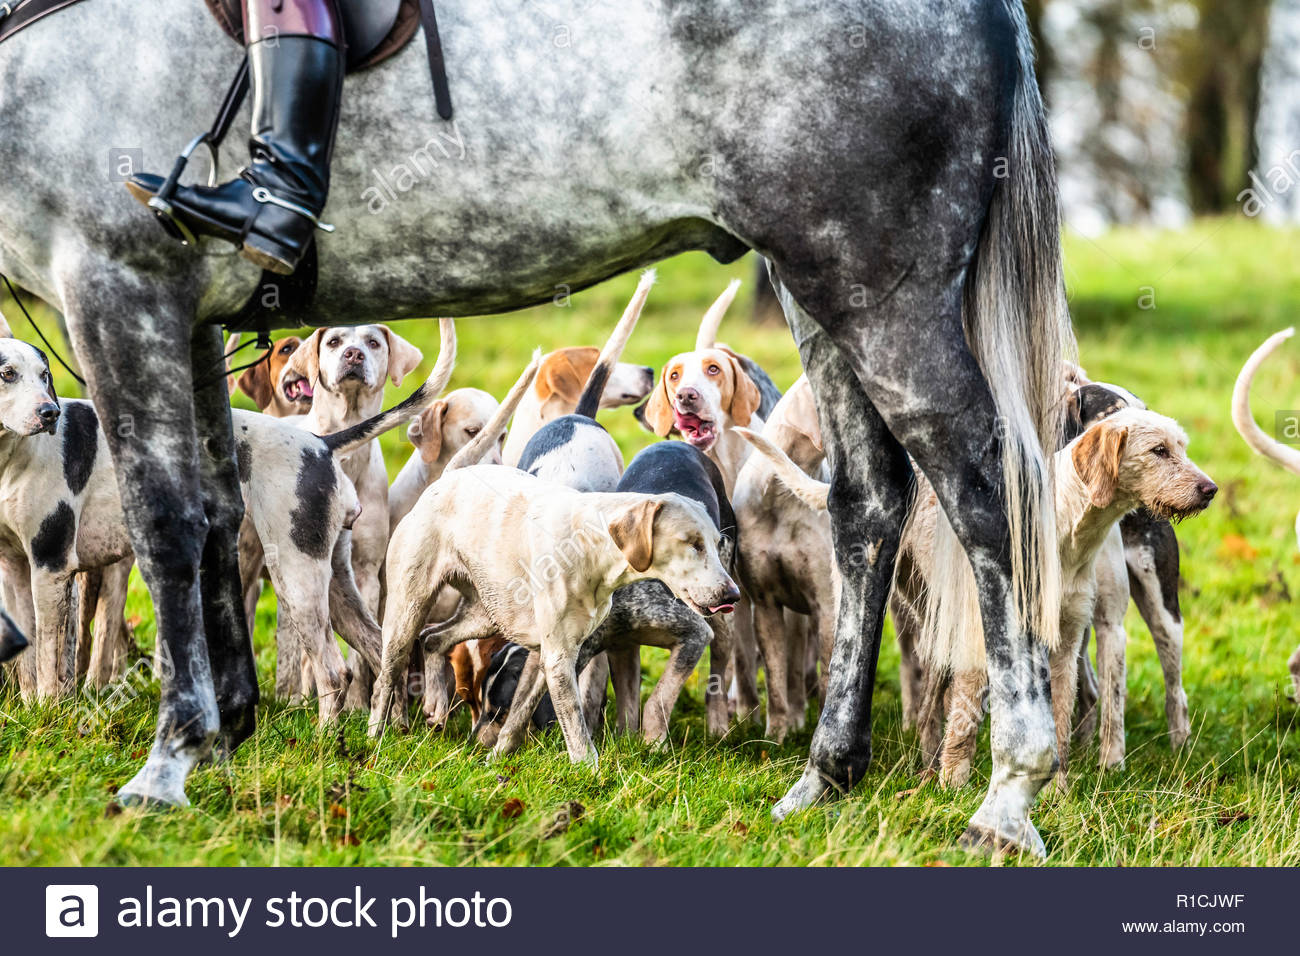 Roberton, Hawick, Scottish Borders, UK. 10th November 2018. The Duke of Buccleuch foxhounds flush foxes to guns in the Hawick hills. The areas economy Stock Photo